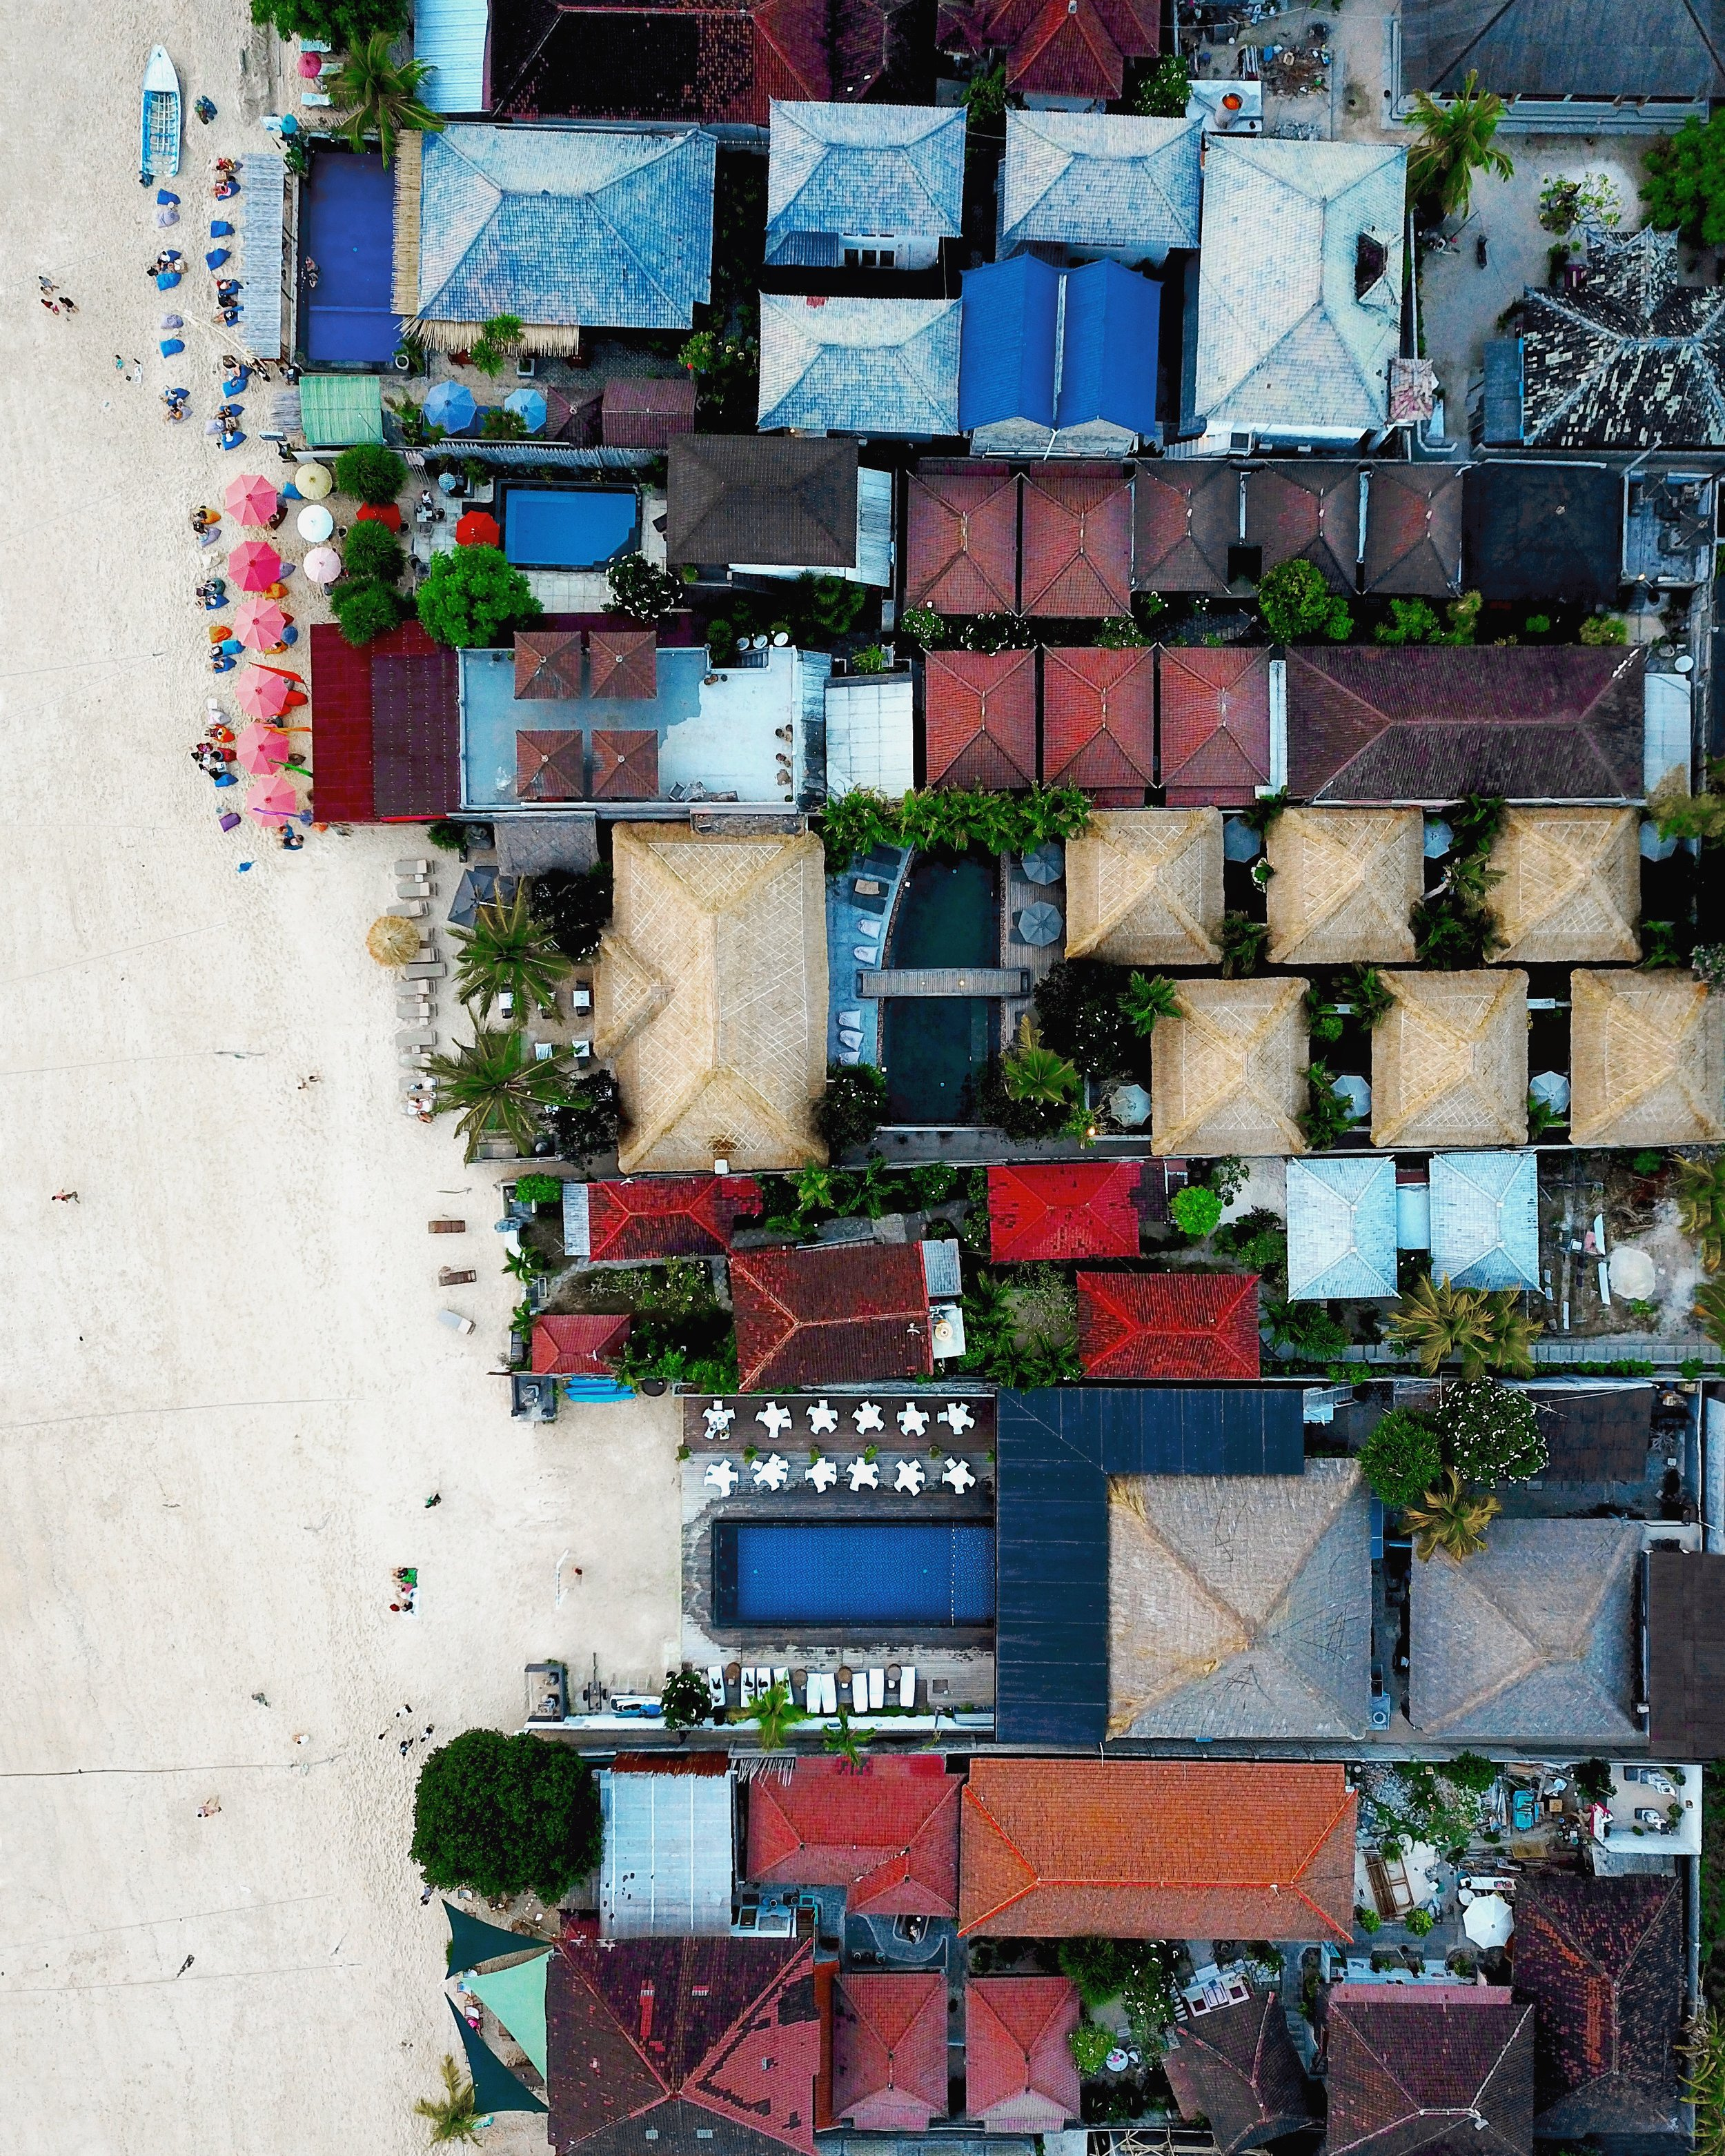 """Check out this drone photo captured by our founder Benjamin Grant above Nusa Lembongan, an island located southeast of Bali, Indonesia. The island is approximately 3 square miles (8 sq. km) in size and has a permanent population of around 5,000 people. It is surrounded by coral reefs, white sand beaches and low limestone cliffs.  8°40'58.8""""S, 115°26'45.7""""E"""